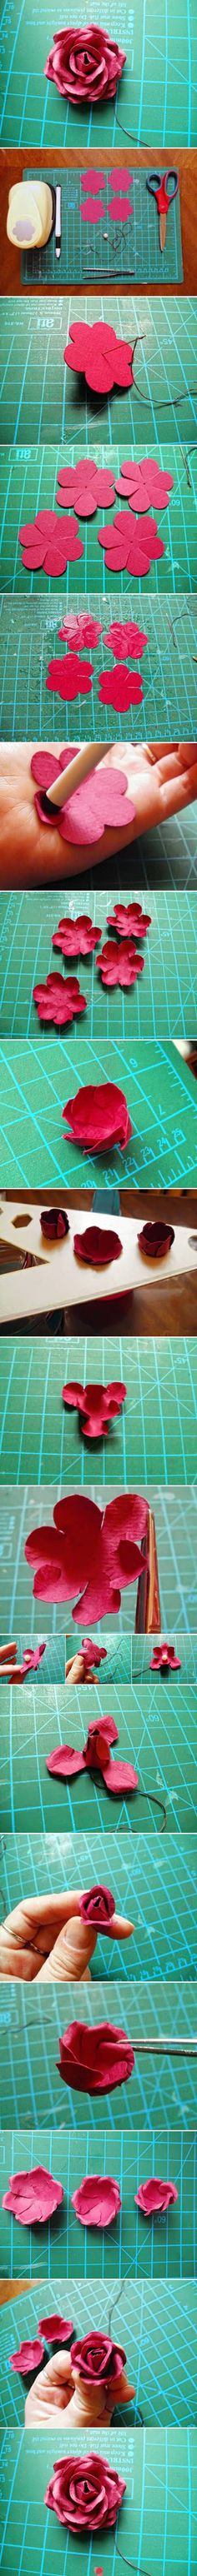 Easy to follow paper rose tutorial - beautiful